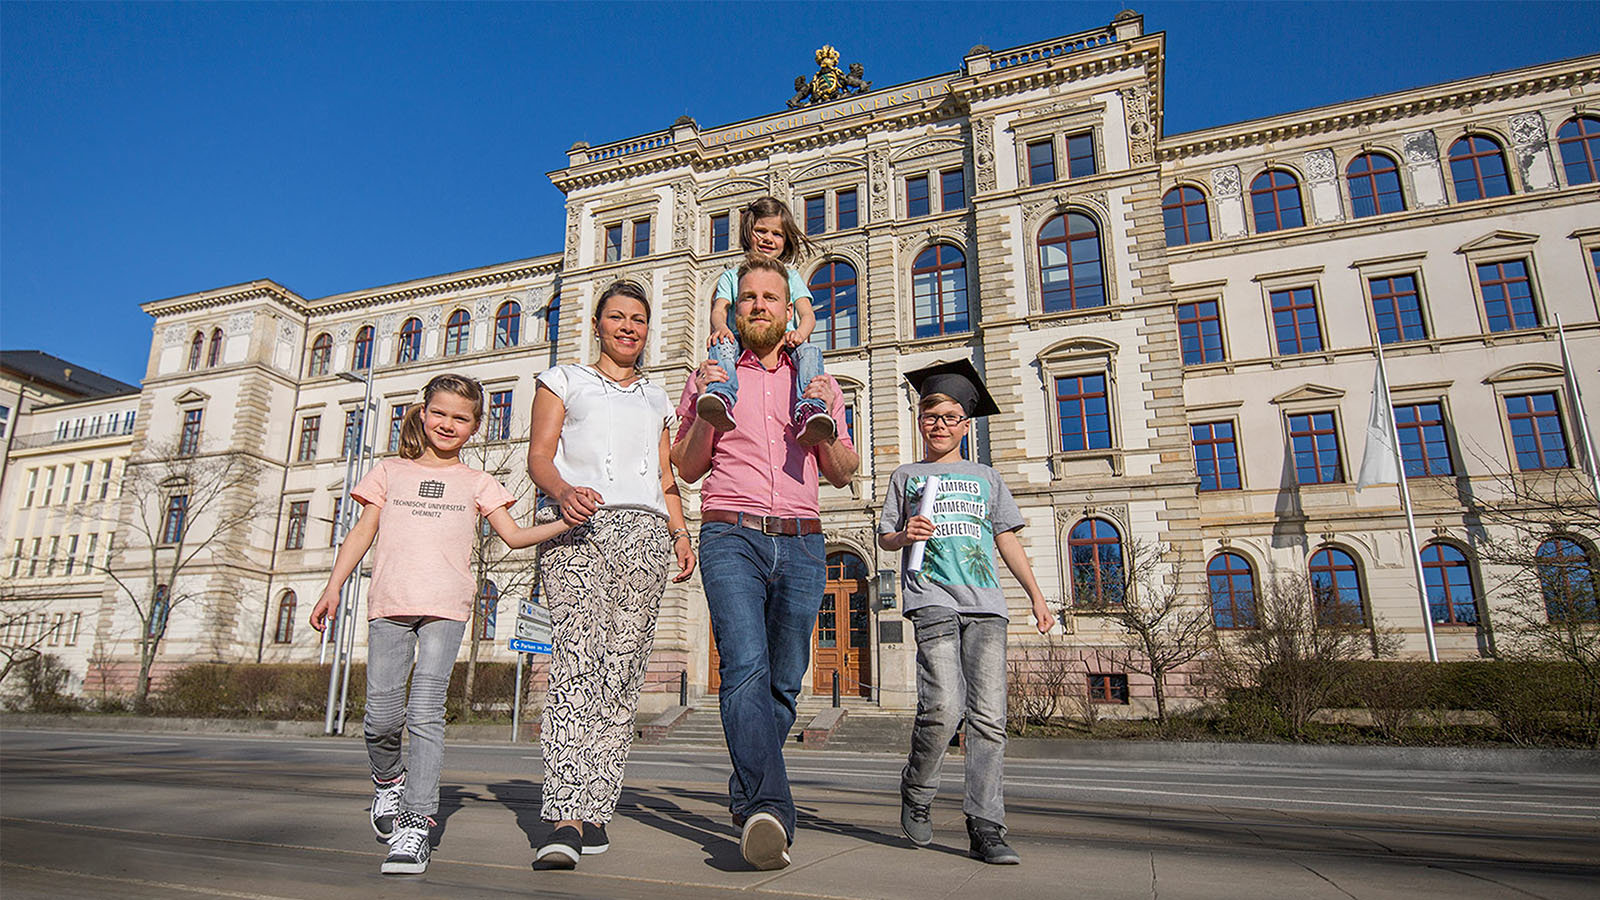 Parents with three chilfrens are walking in front of the university main building.